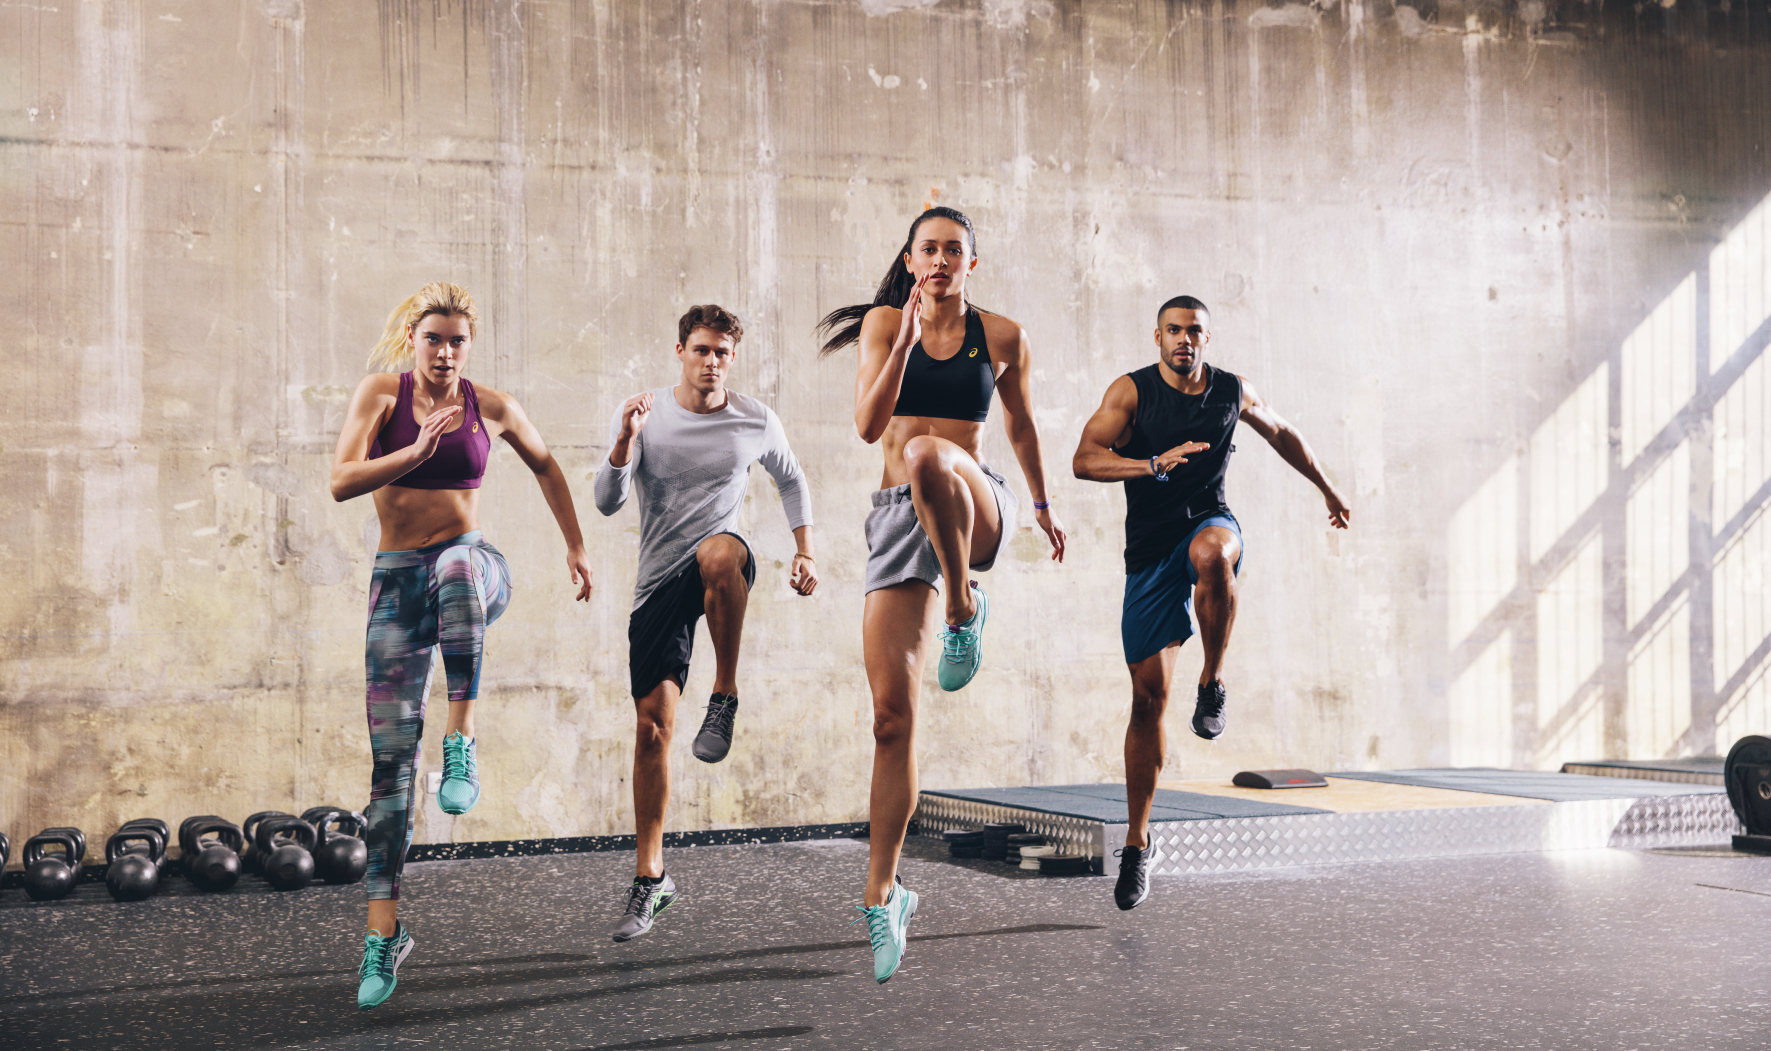 3 EASY WAYS TO GET FIT